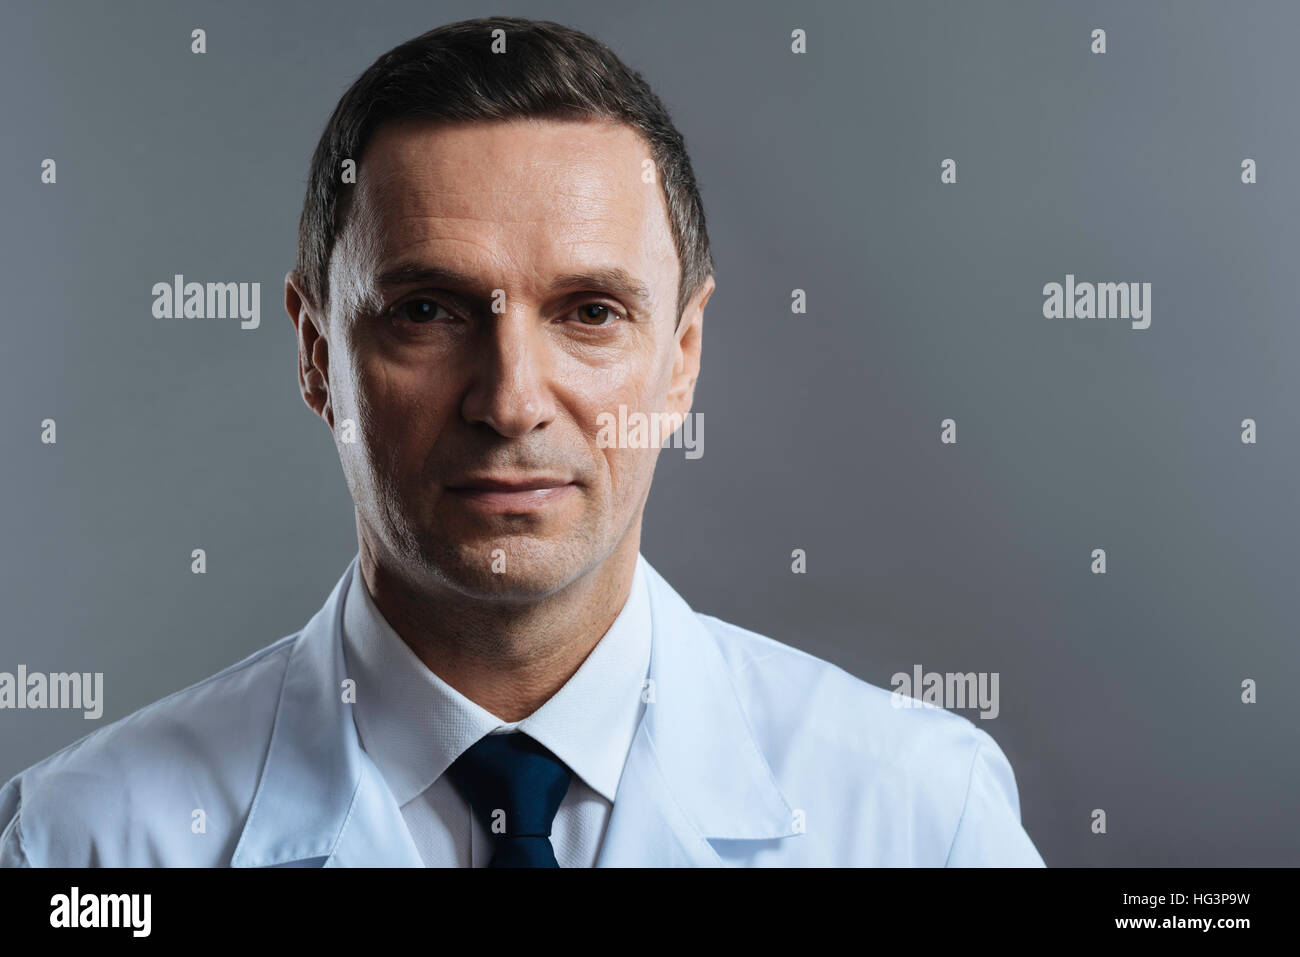 Handsome doctor posing on a grey background - Stock Image